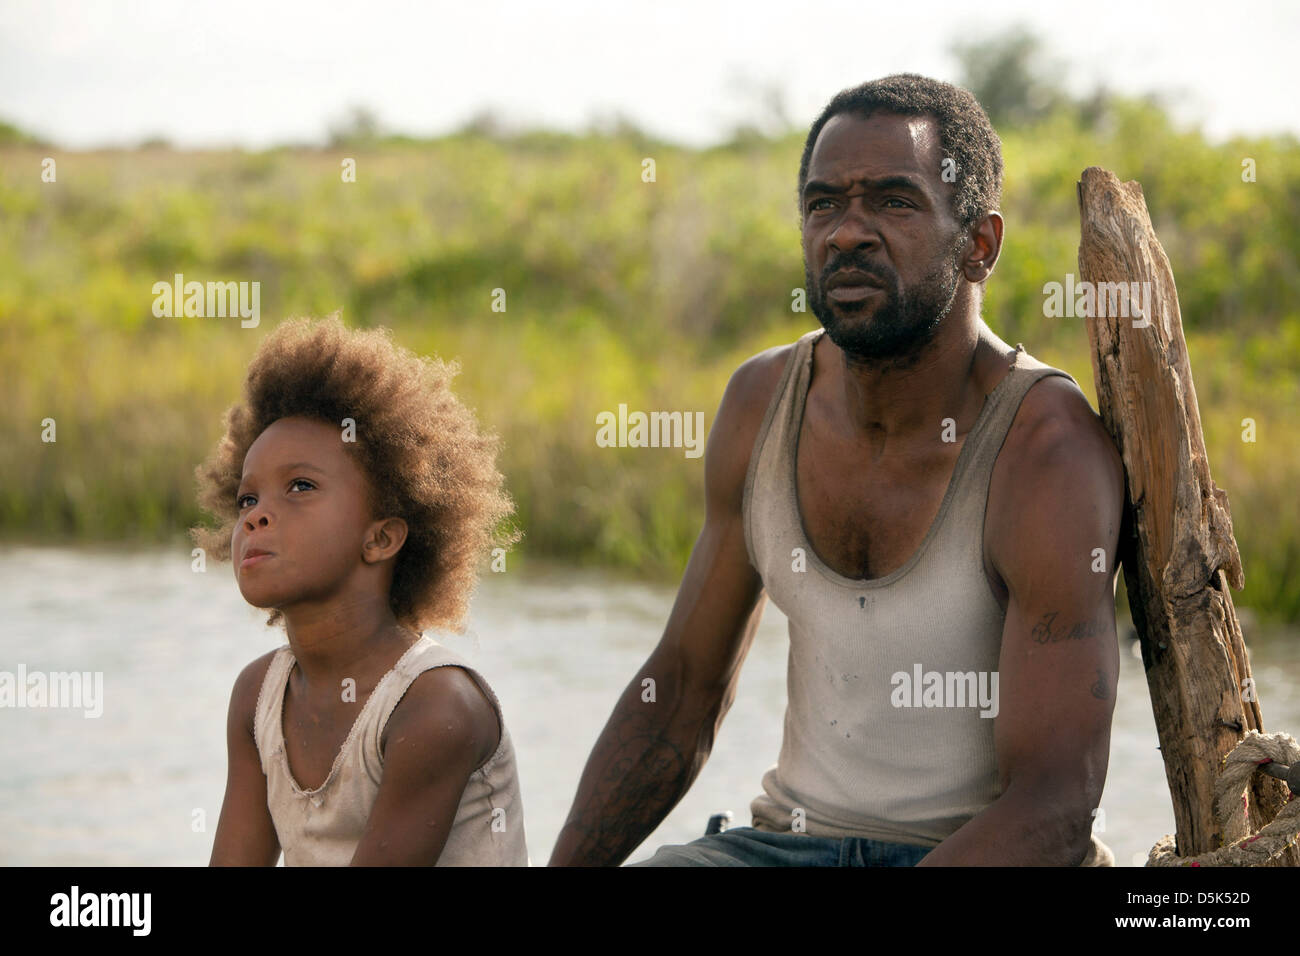 QUVENZHANE WALLIS & DWIGHT HENRY BEASTS OF THE SOUTHERN WILD (2012) - Stock Image